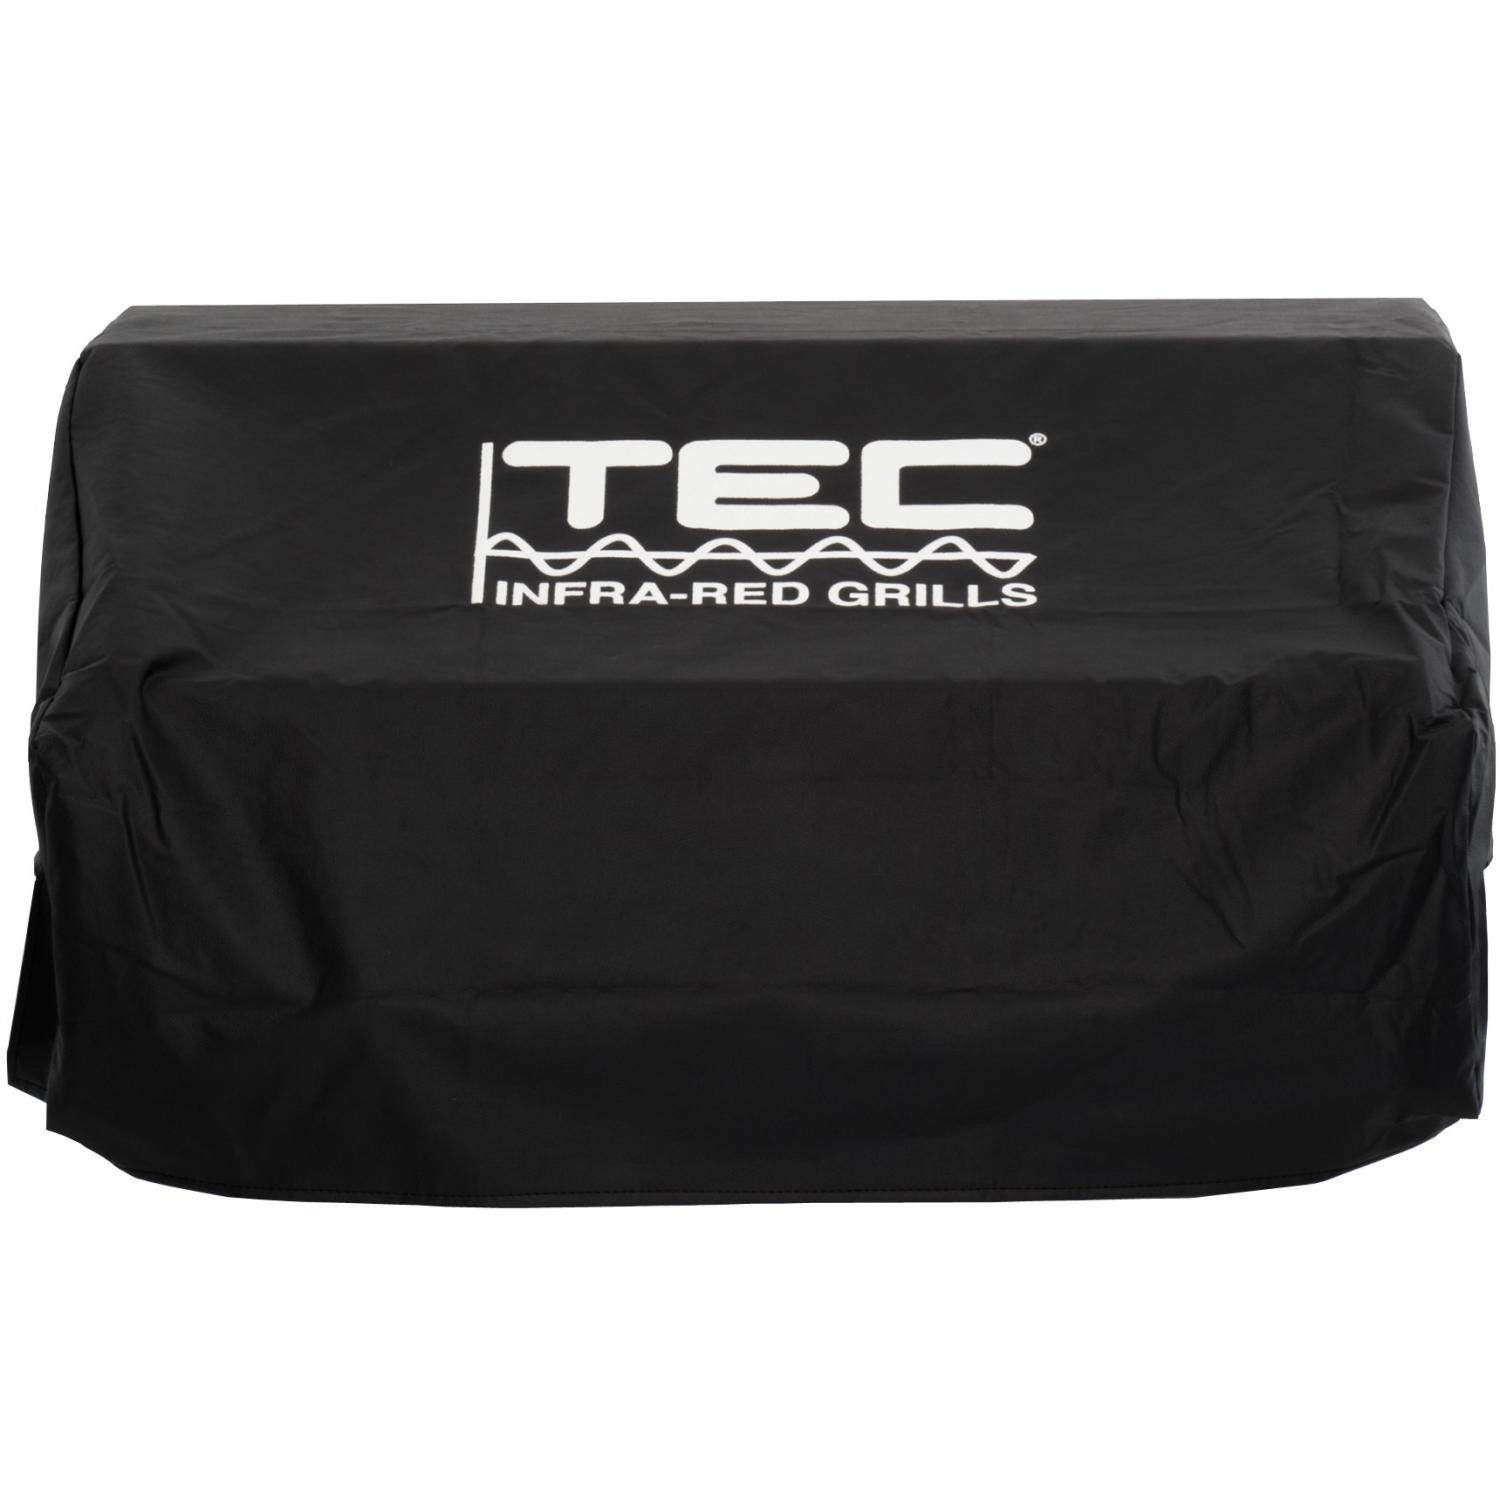 "TEC Grill Cover for 44"" Patio / Sterling Patio FR Series Built-In Gas Grill"